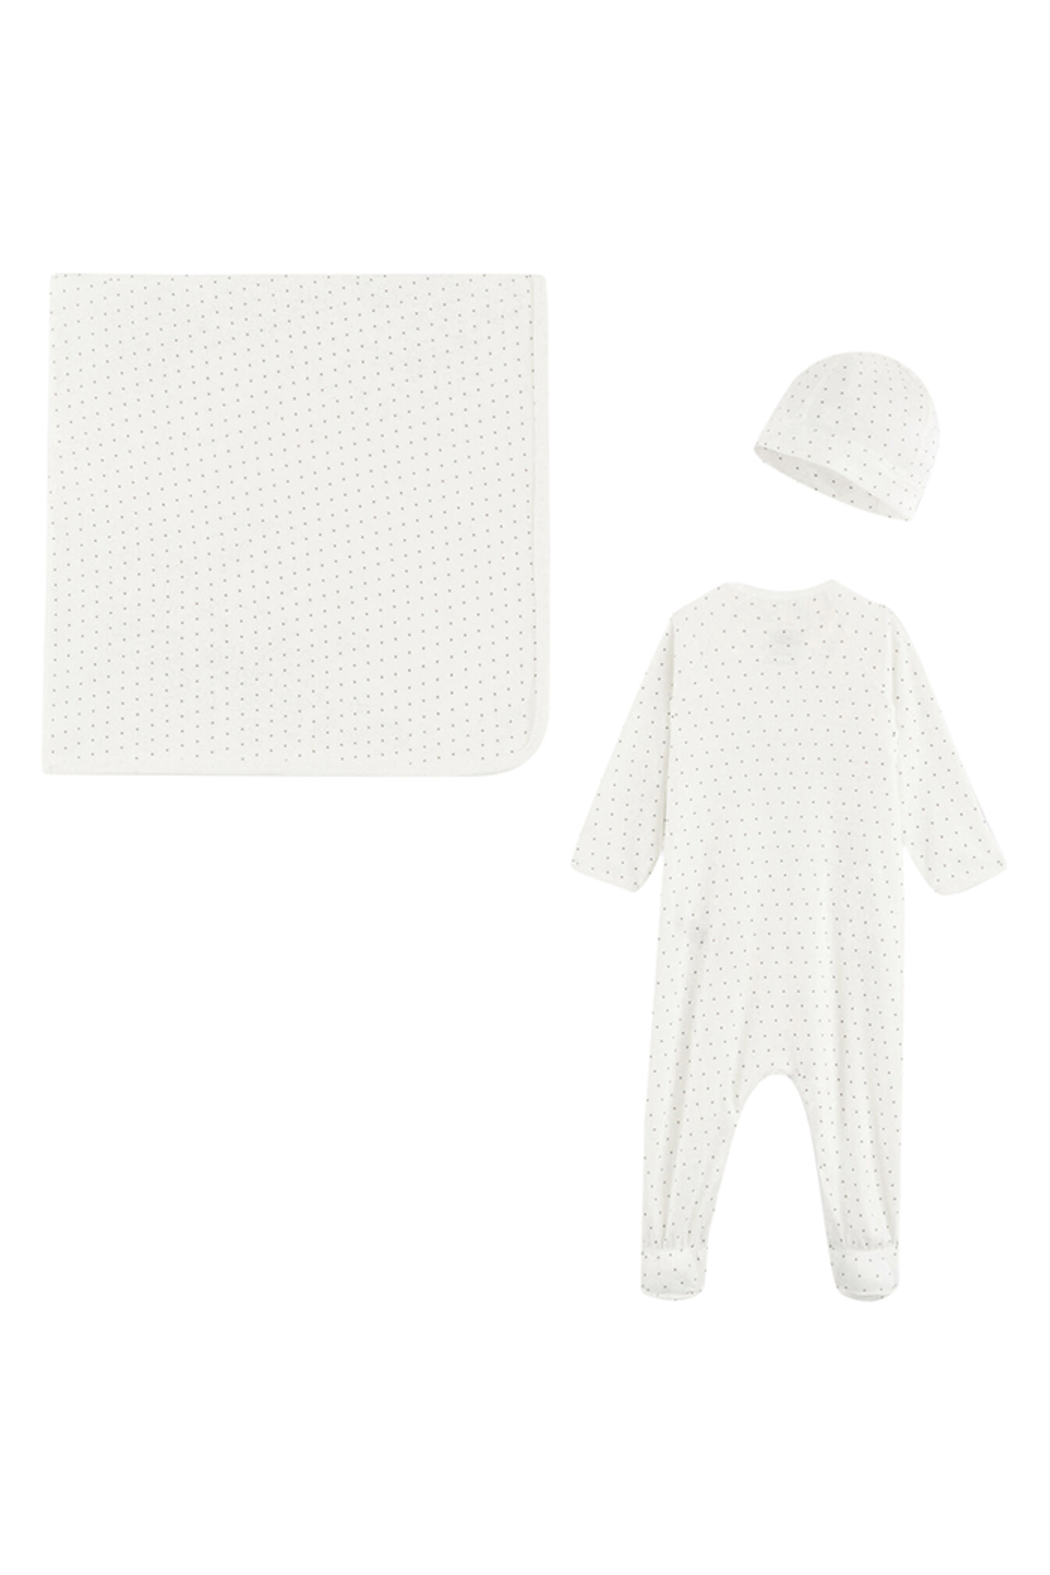 Petit Bateau  Baby Boy 3 Peice Gift Set ( Dots Footie,Blanket & Beanie)Best For Baby Shower Gifting - Front Full Image